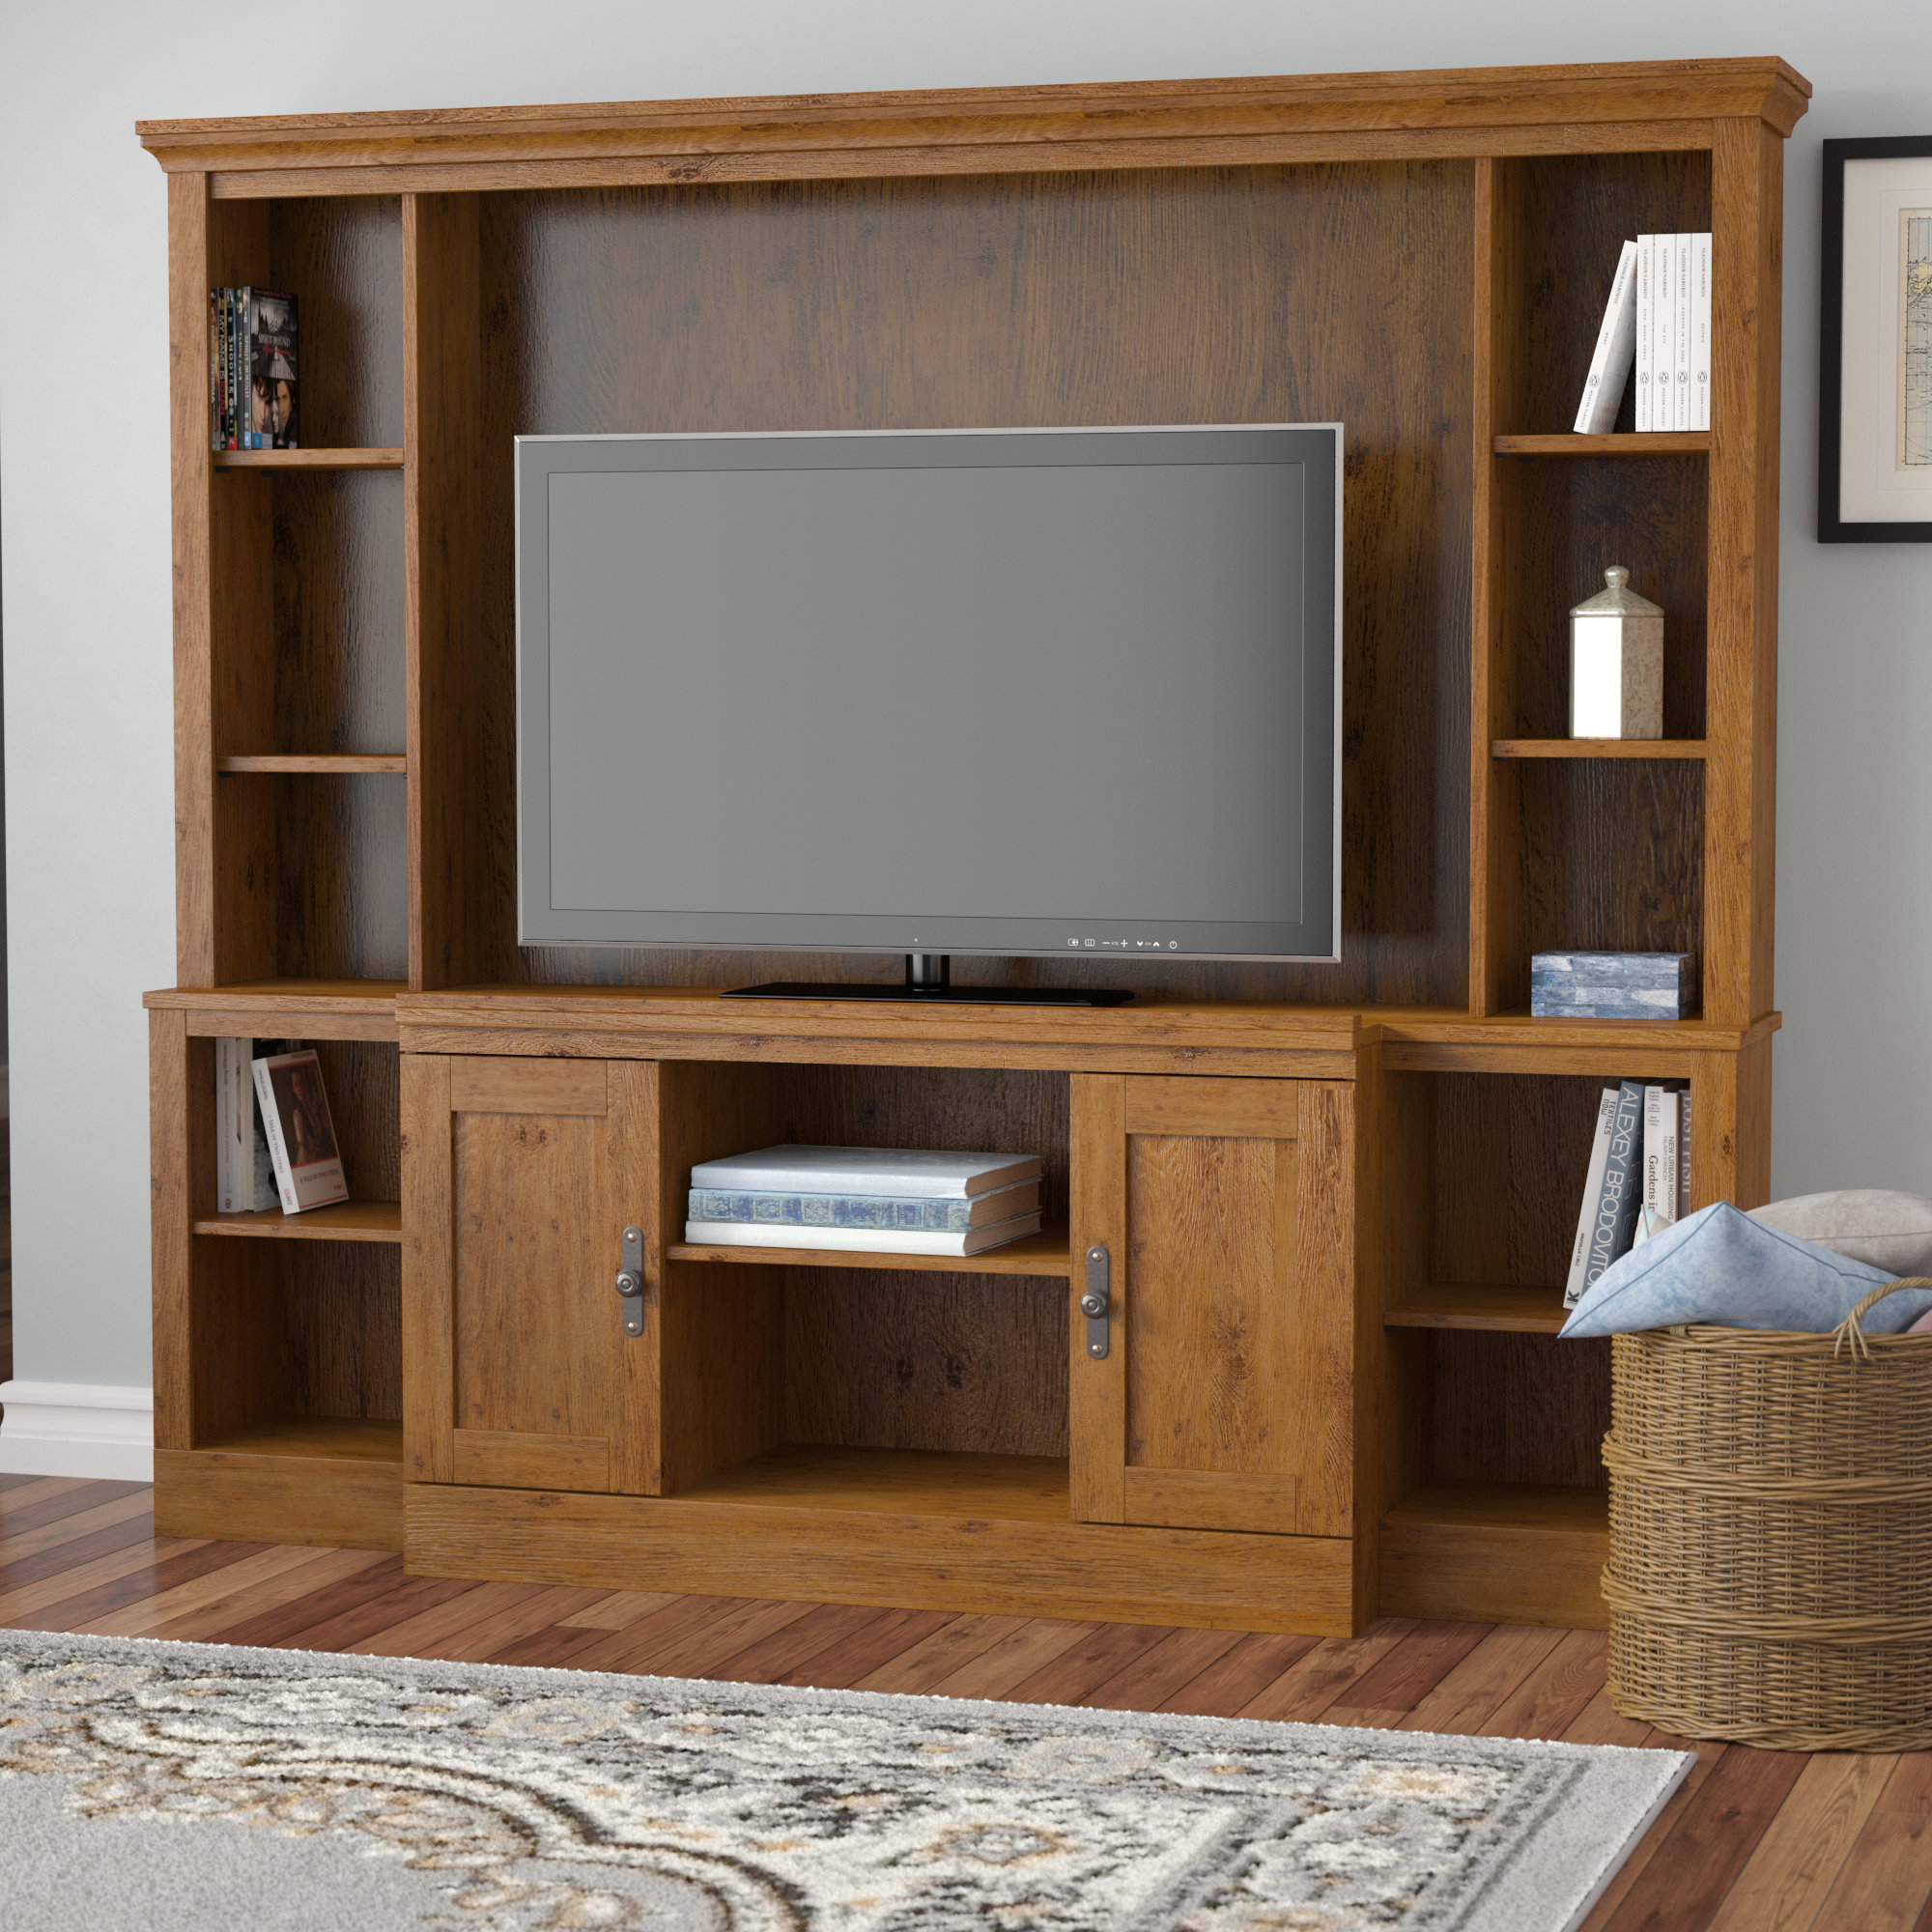 Tv Stands With Hutch You'll Love | Wayfair Inside Kilian Grey 60 Inch Tv Stands (View 4 of 30)